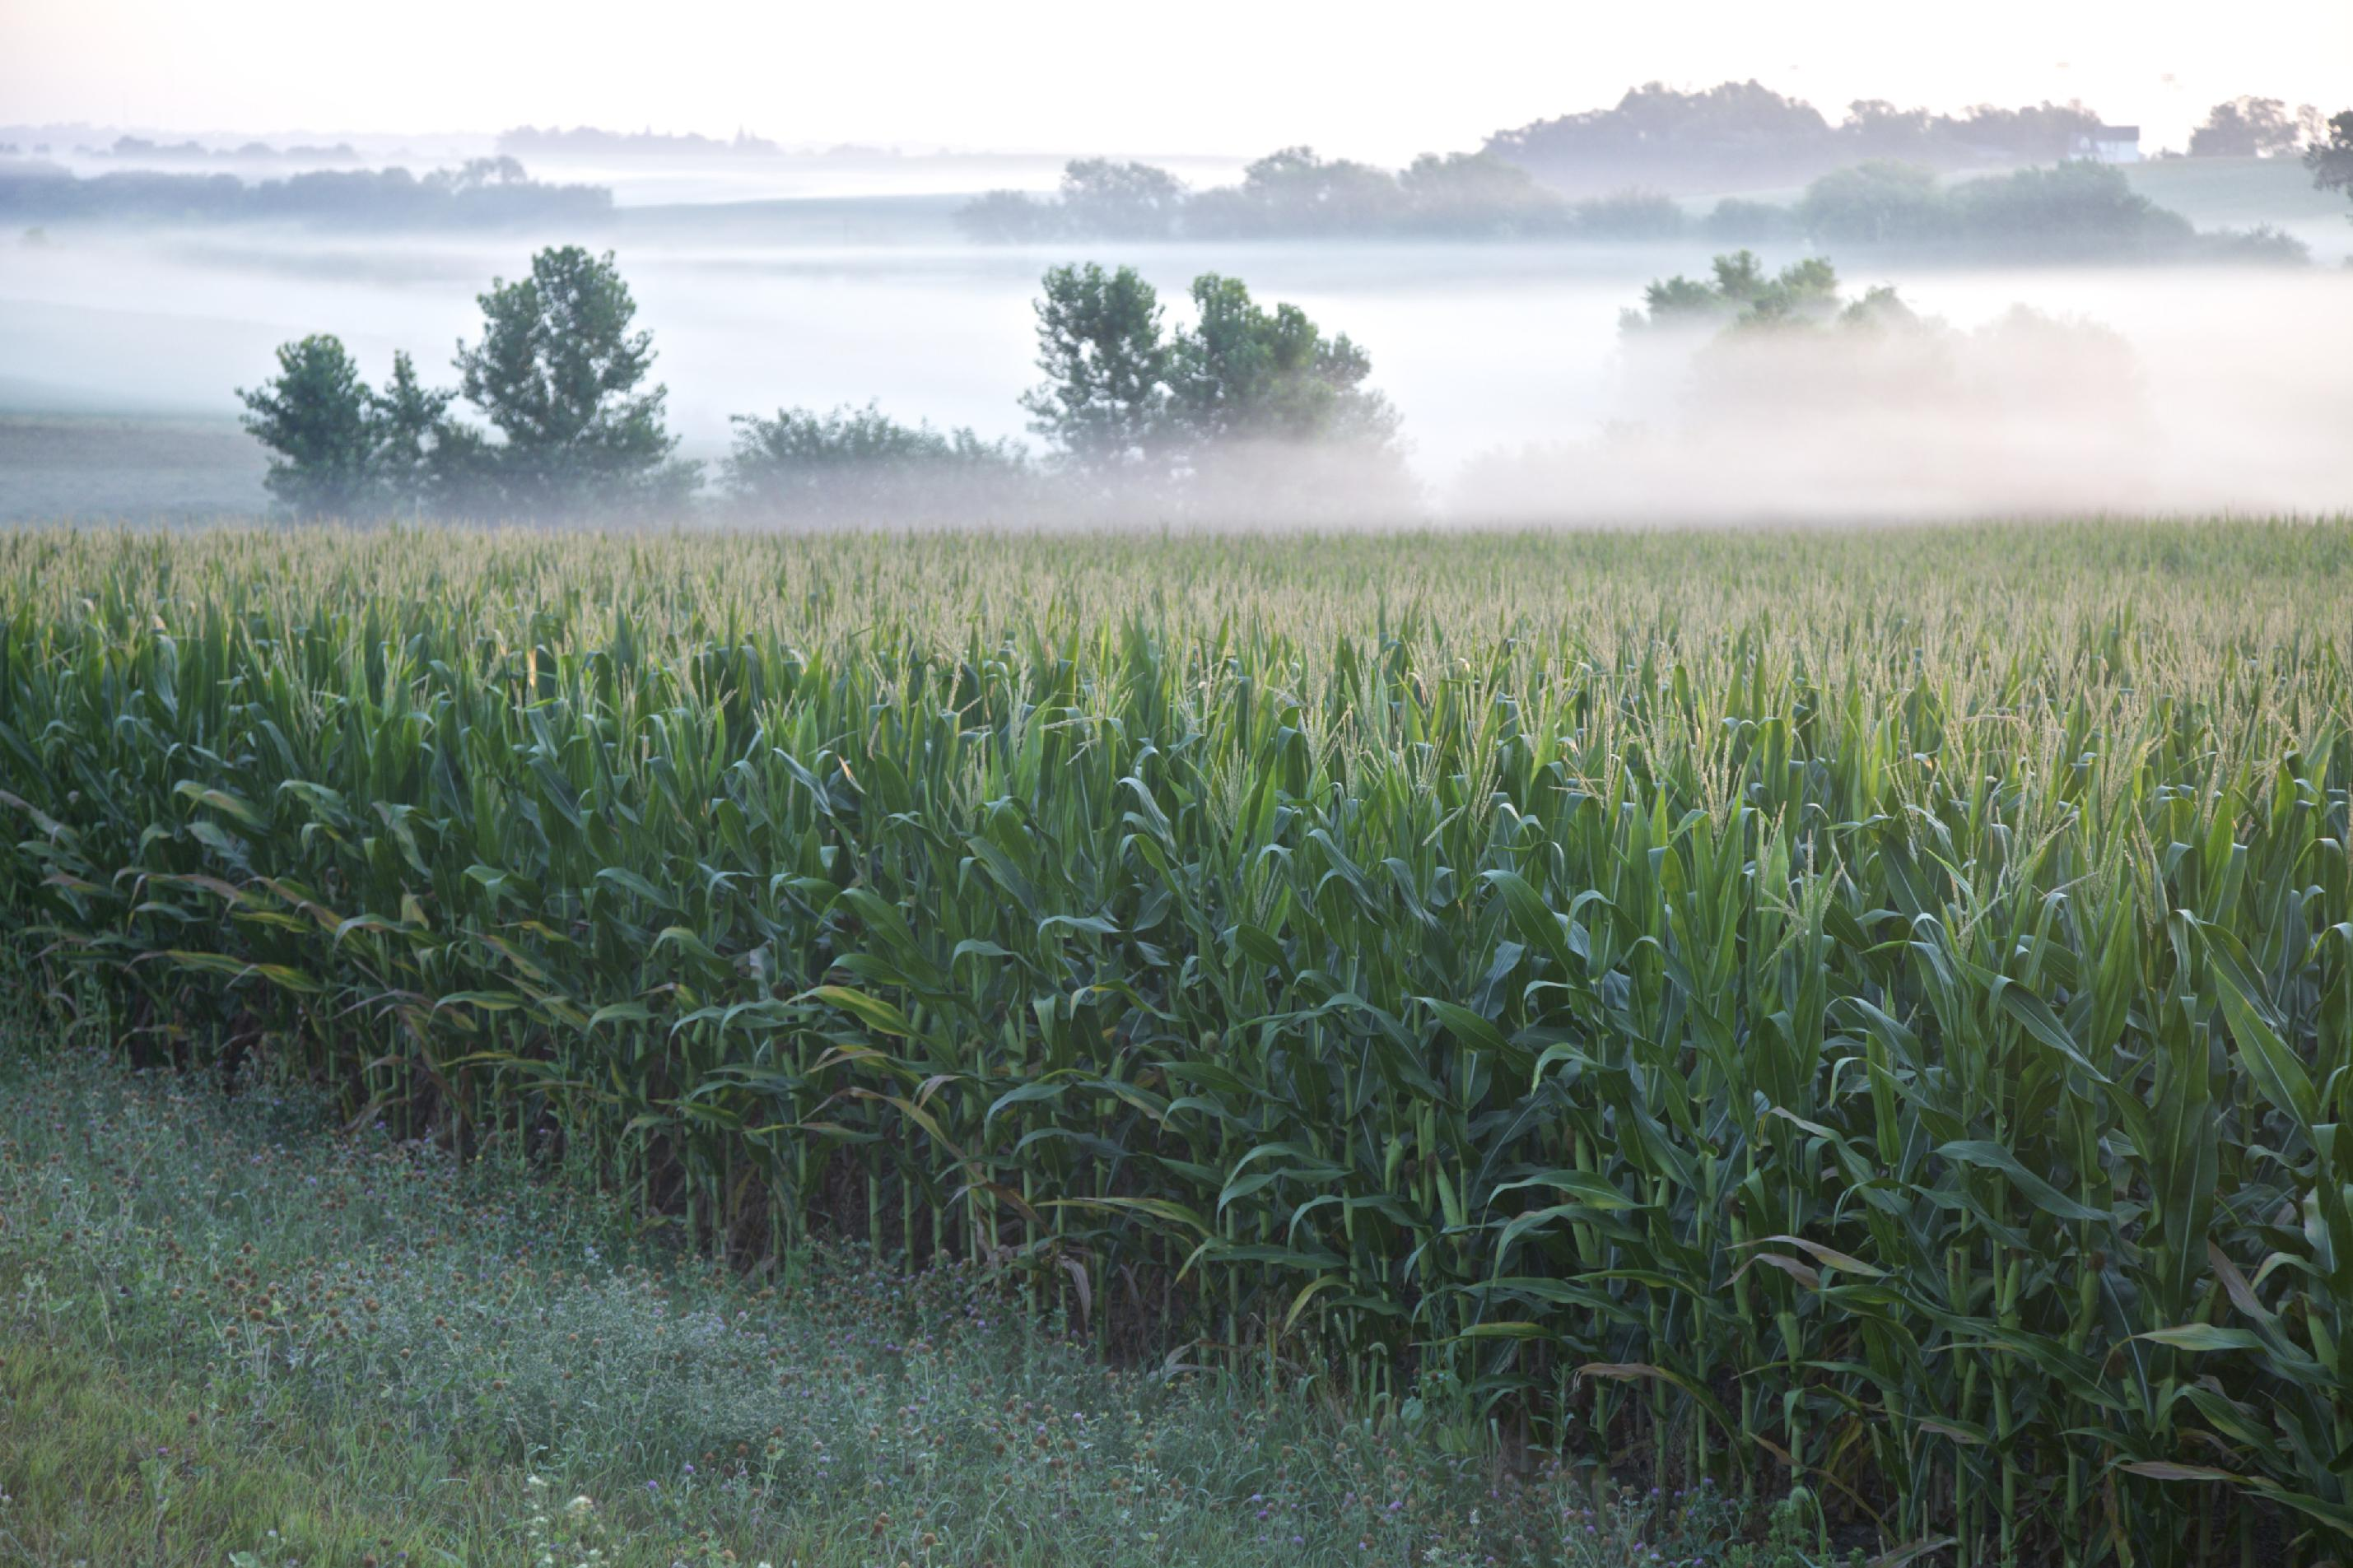 A corn field shrouded by fog near Springfield, Neb. (AP Photo/Nati Harnik, file)